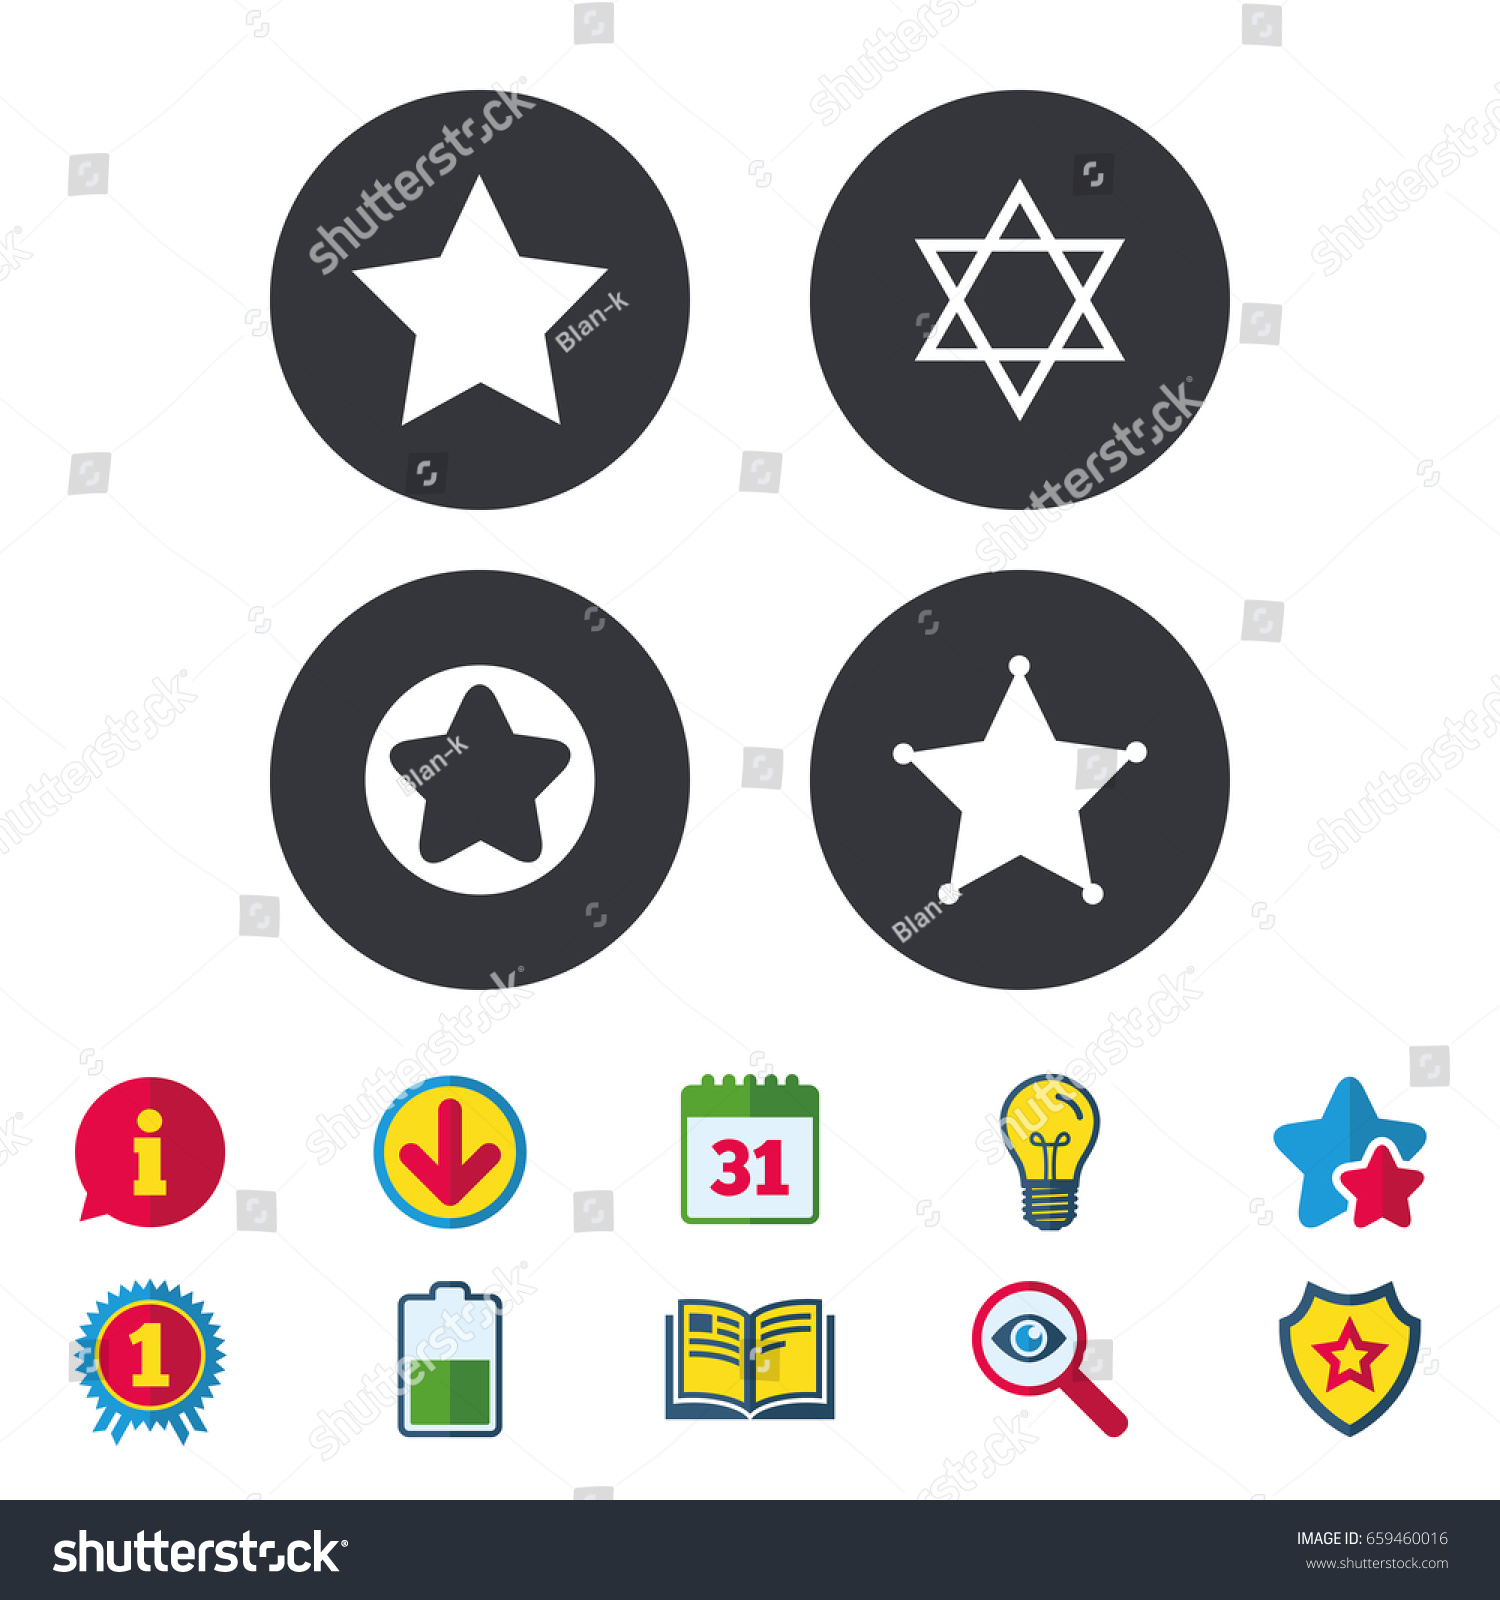 Star David Icons Sheriff Police Sign Stock Vector Royalty Free